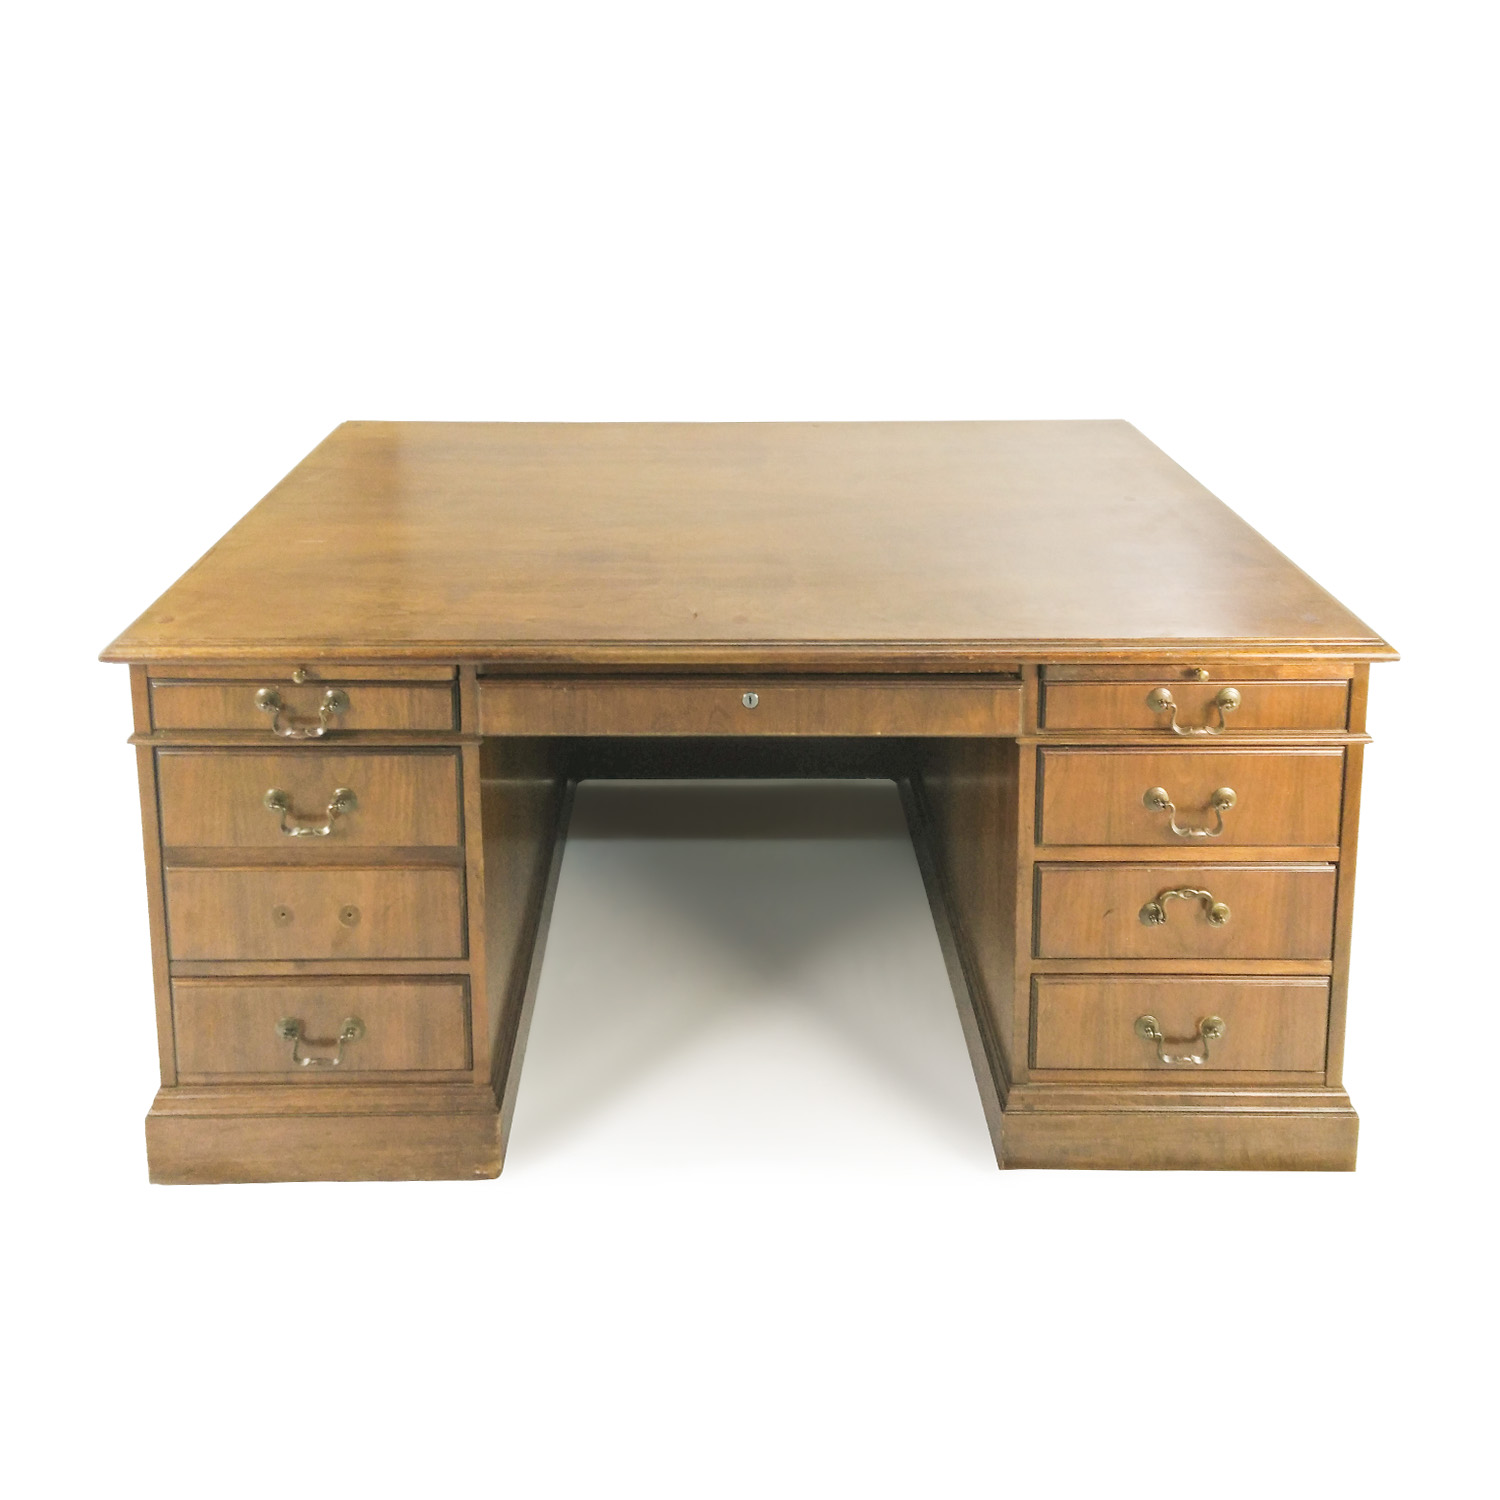 ... buy Antique Solid Oak Bankers Desk Antique ... - 84% OFF - Antique Antique Solid Oak Bankers Desk / Tables